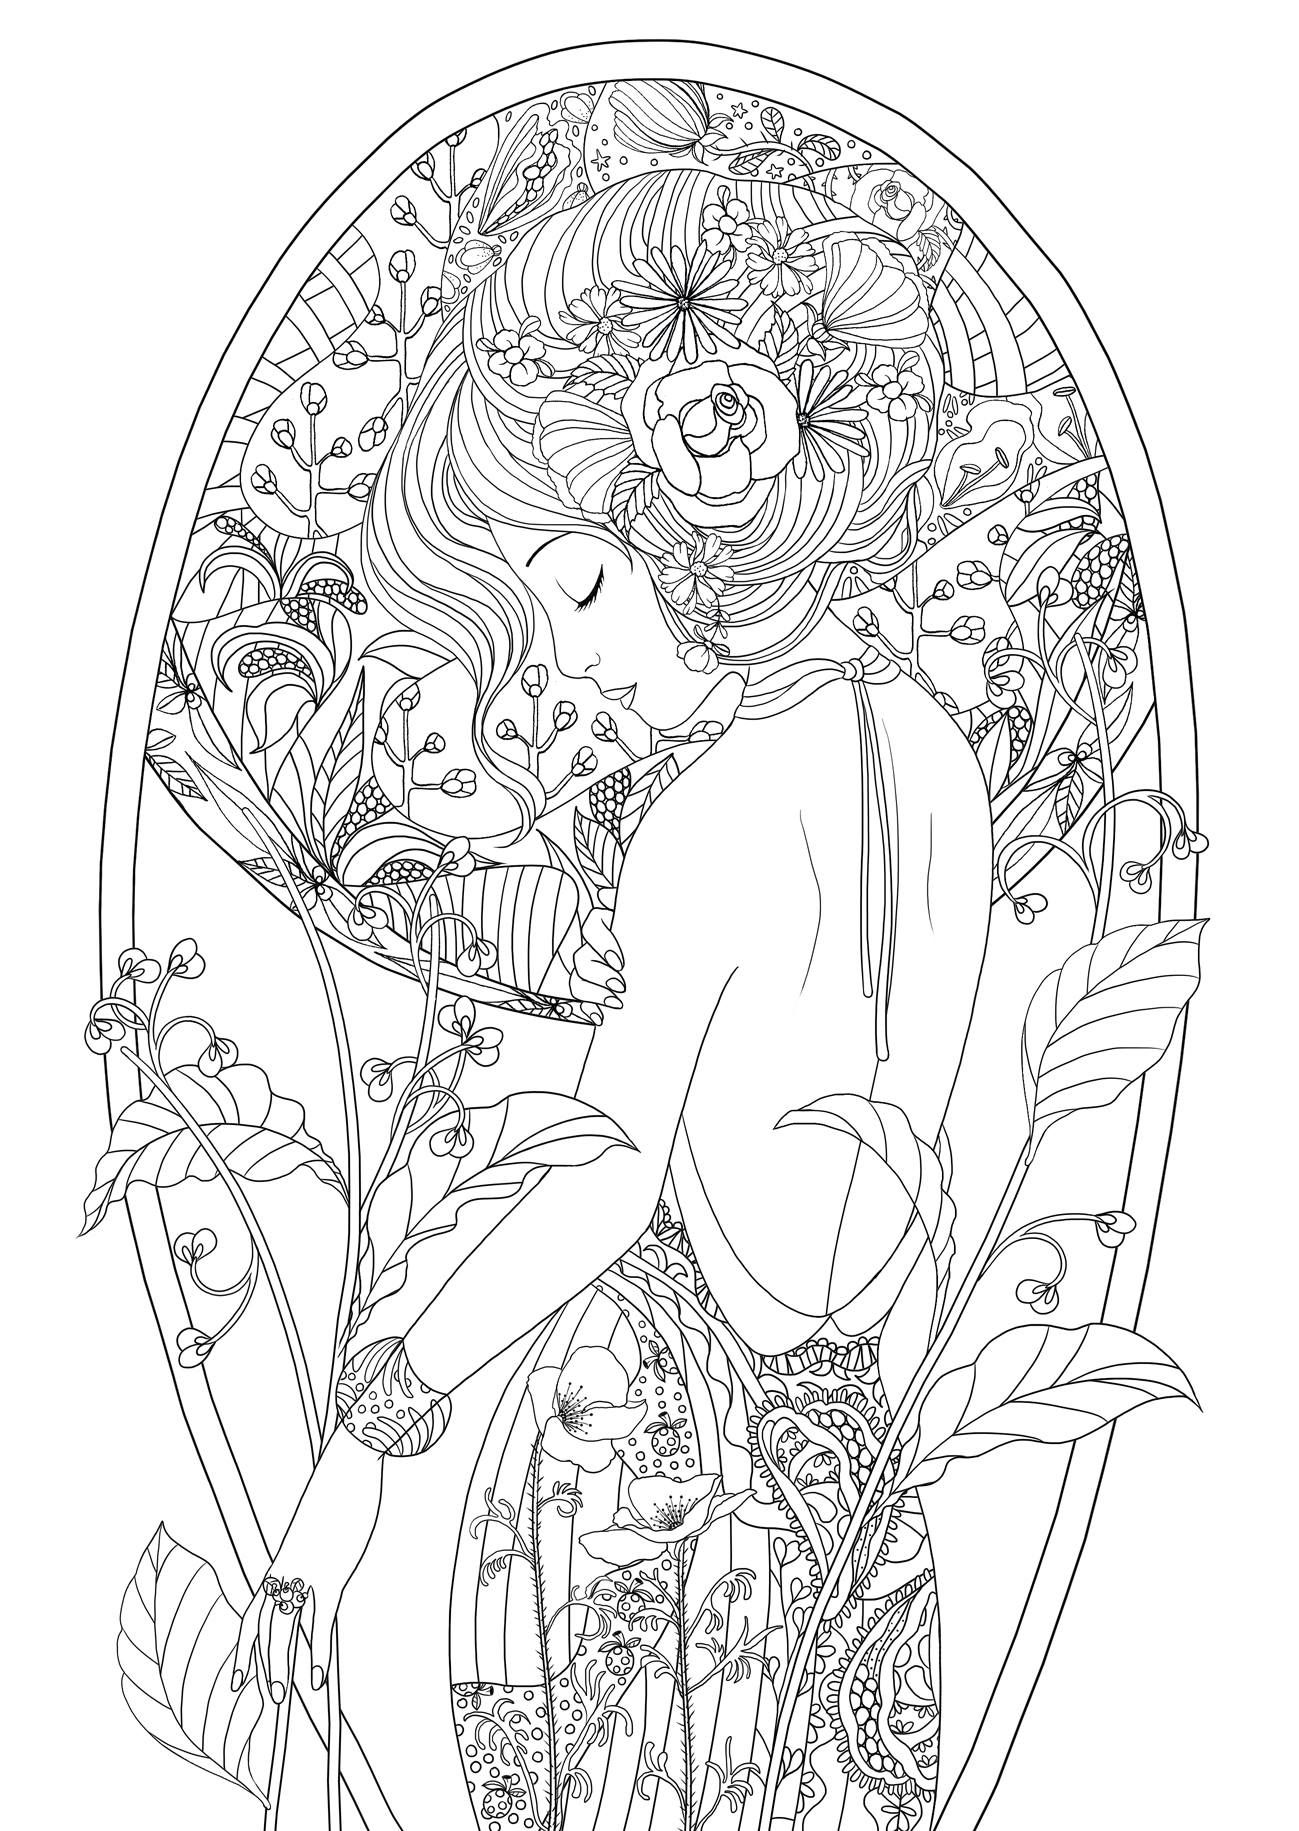 Beauty | Beautiful Women Coloring Pages for Adults | Pinterest ...